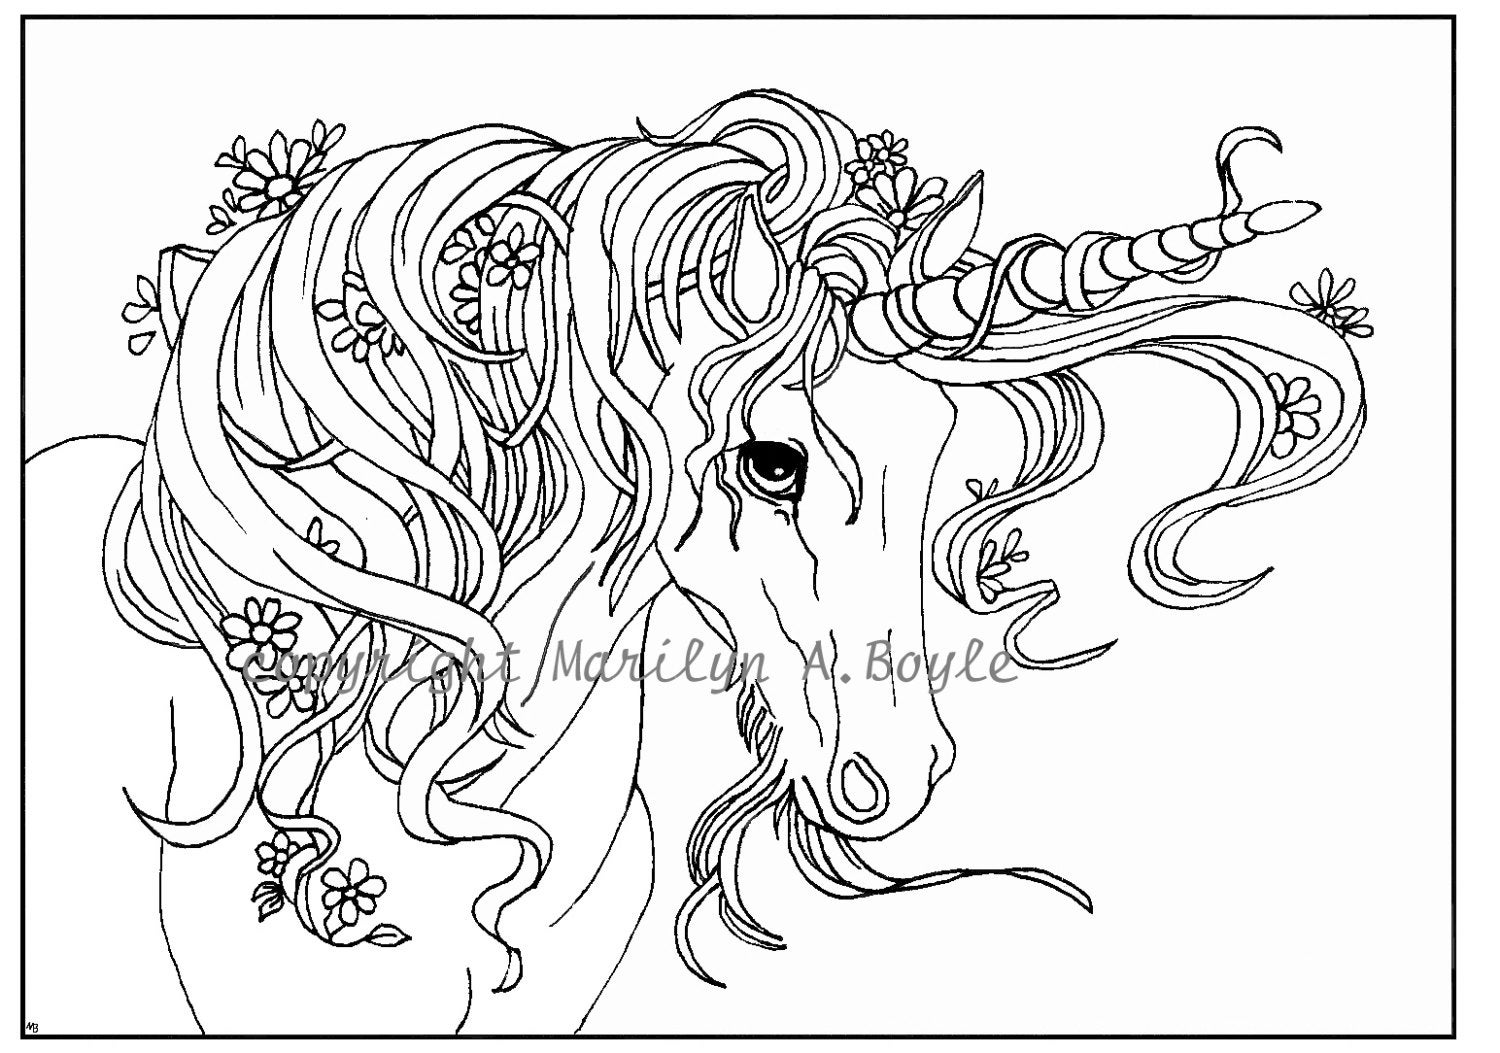 Watercolor paper coloring book - Coloring Book Five Pages On 140 Lb Watercolor Paper Fantasy Unicorns Fairy Child Elf Dragon Chickadees Original Art 2 Christmas Pages